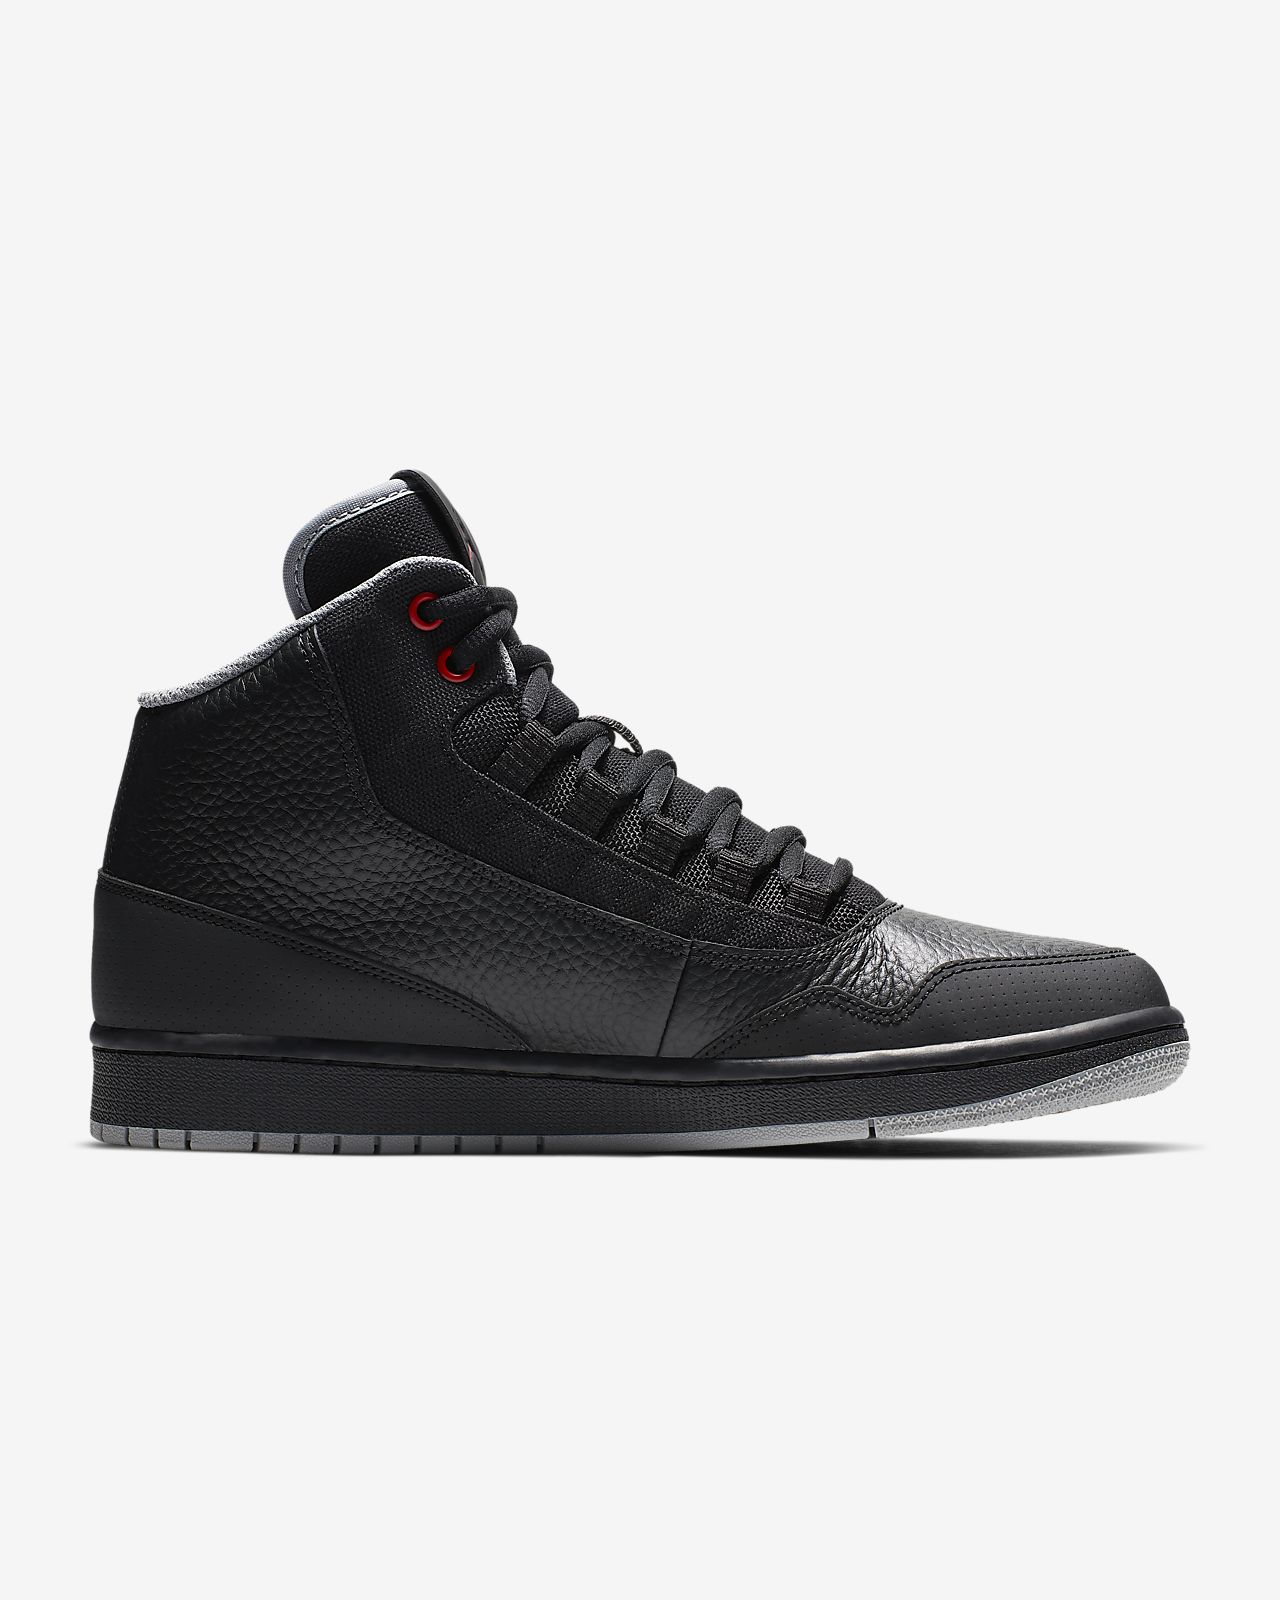 new product c03c9 f68dd Low Resolution Chaussure Jordan Executive pour Homme Chaussure Jordan  Executive pour Homme